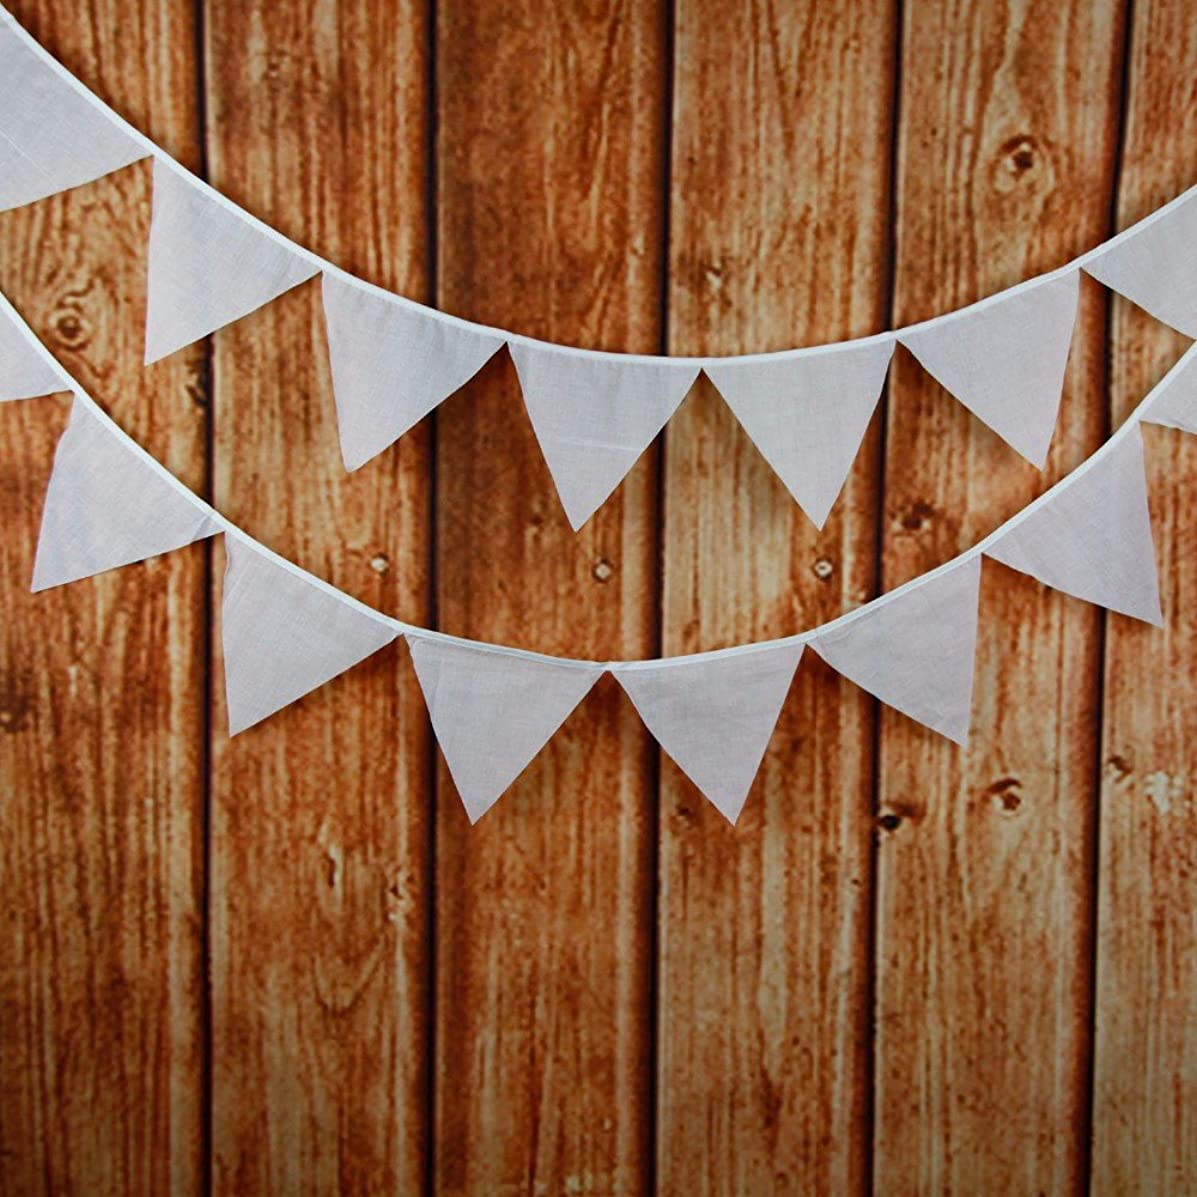 Yalulu Retro White Cotton Bunting Flag Banner Pennant Garland Fabric Triangle Flags Lovely Cloth Shabby Chic Decoration for Birthday Wedding Parties